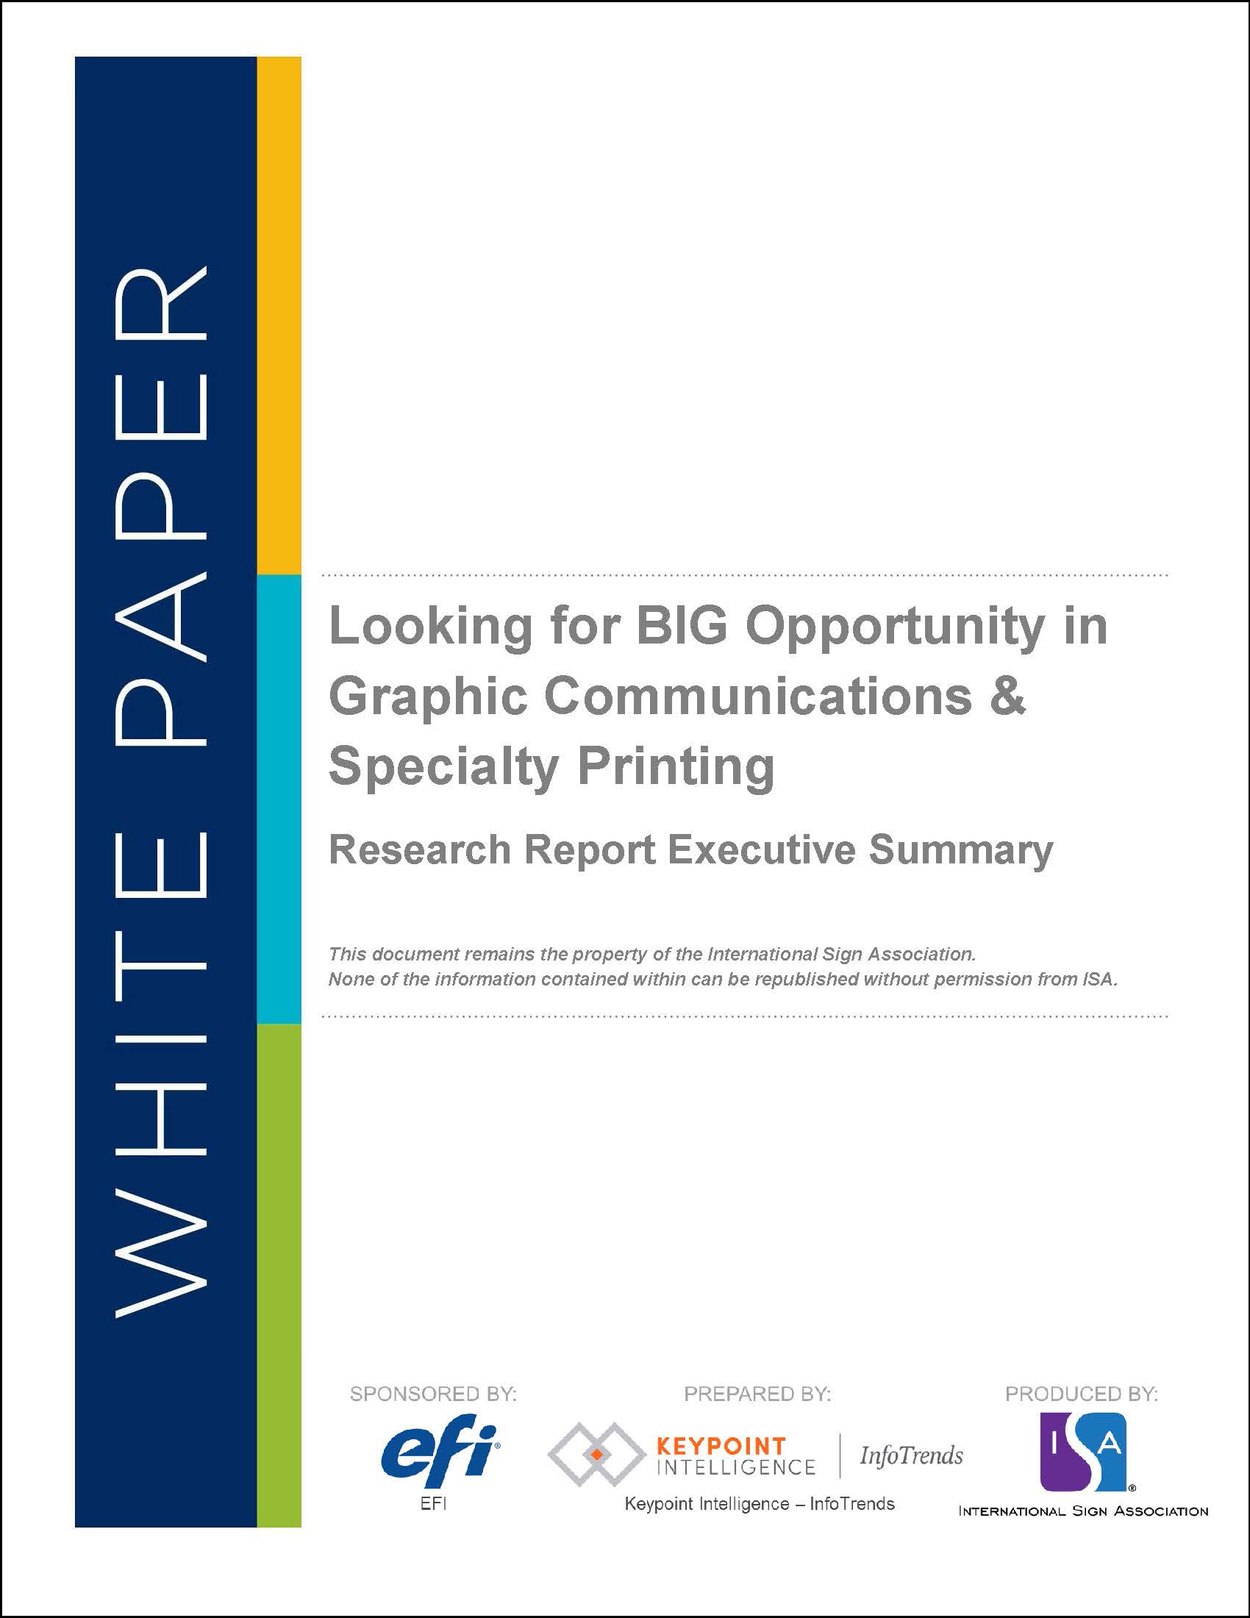 Looking for BIG Opportunity in Graphic Communications & Specialty Printing